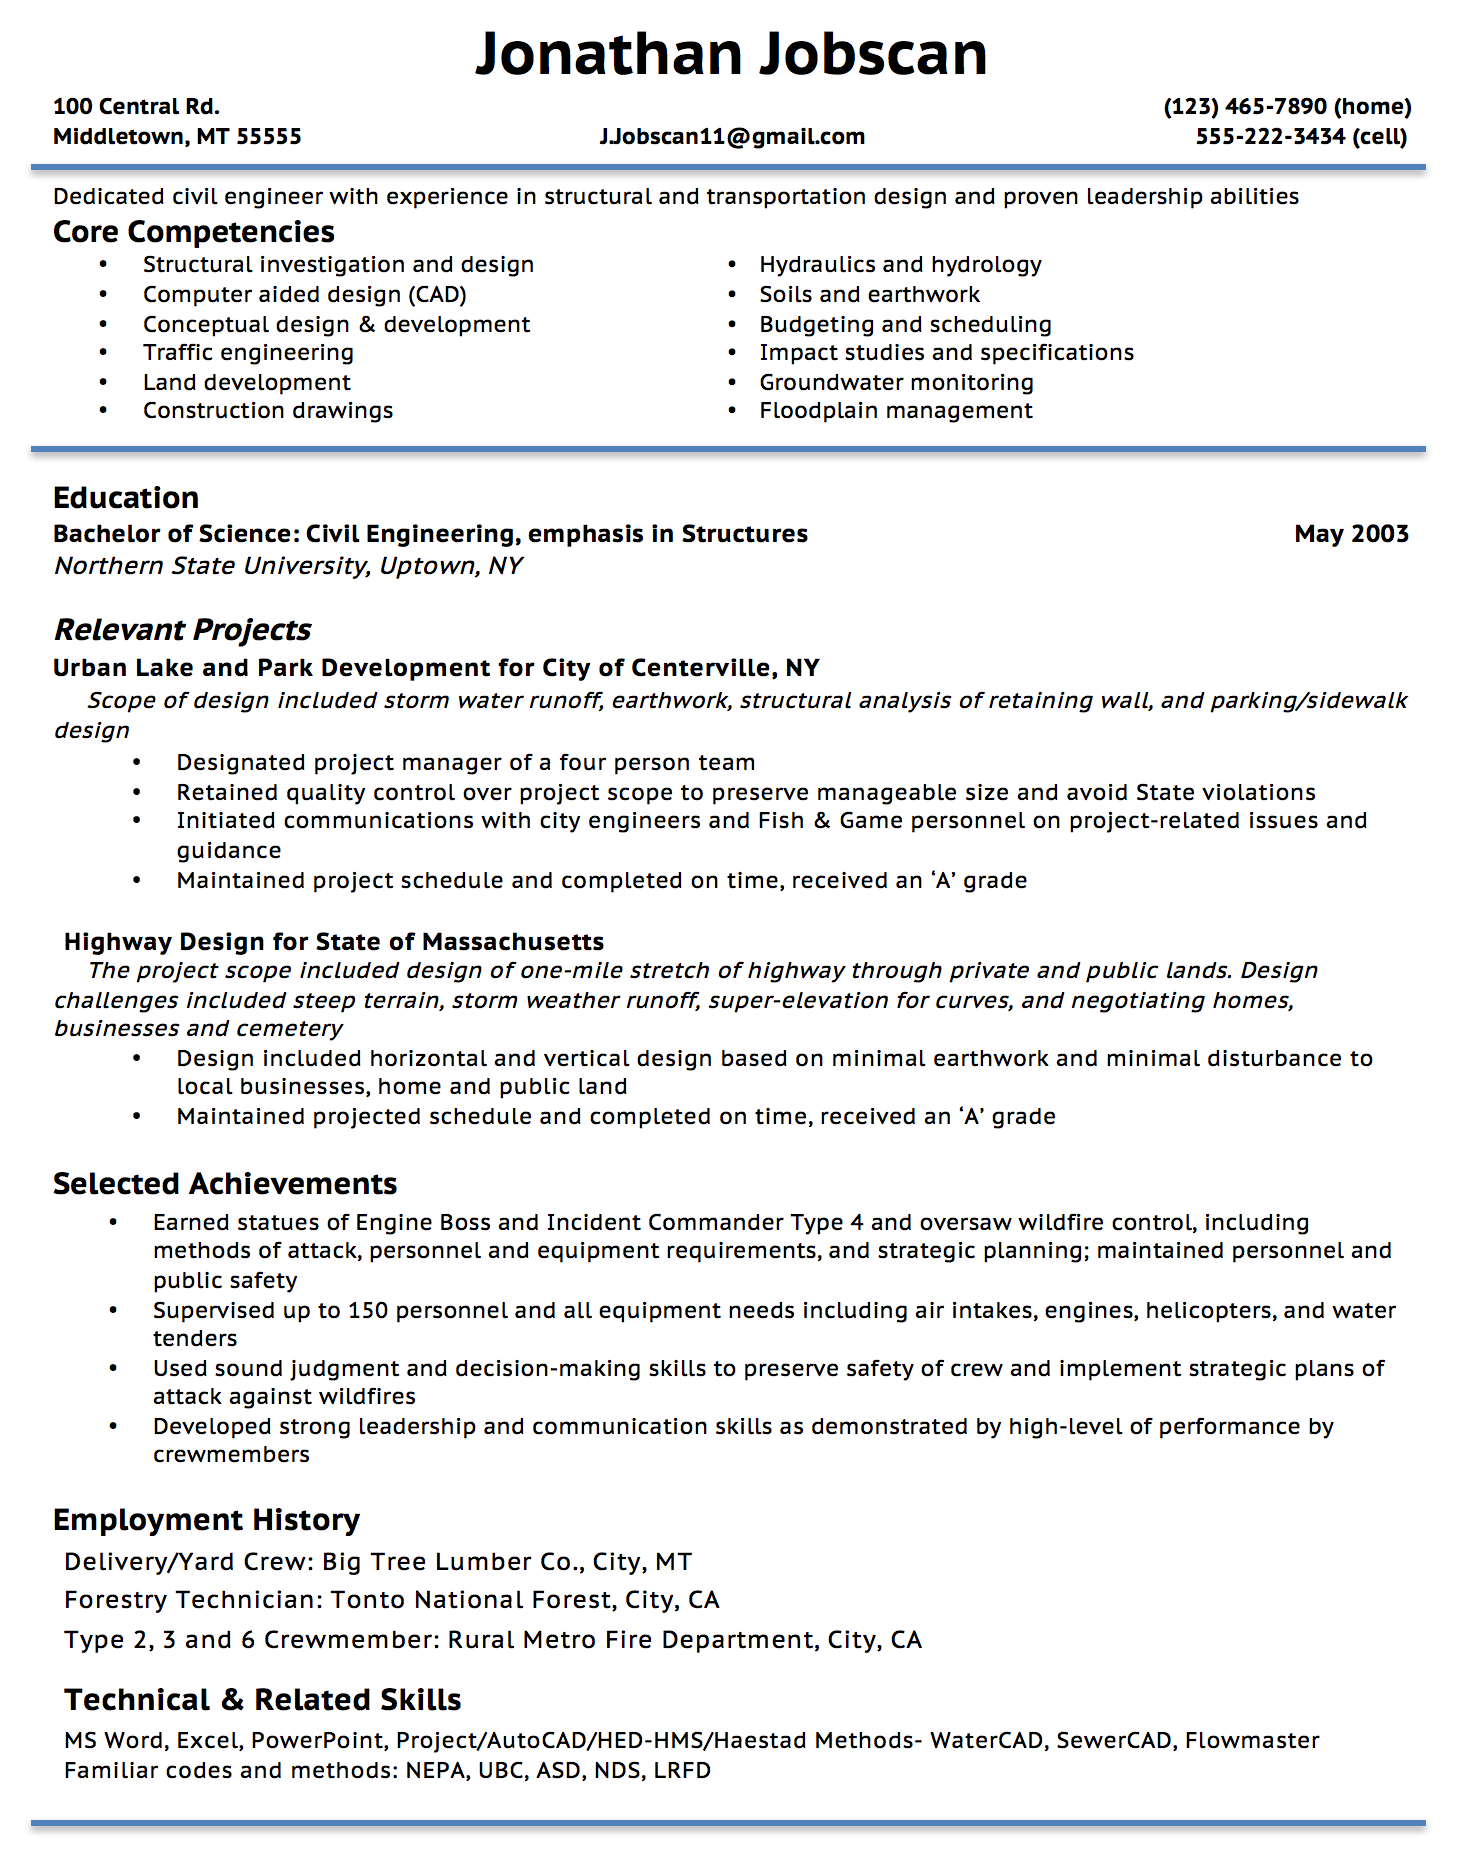 Opposenewapstandardsus  Splendid Resume Writing Guide  Jobscan With Great Example Of A Functional Resume Format With Enchanting What Is The Objective Of A Resume Also Functional Format Resume In Addition Pharmacy Technician Resume Objective And Resume For Food Service As Well As Online Resume Examples Additionally Best Resume Template Word From Jobscanco With Opposenewapstandardsus  Great Resume Writing Guide  Jobscan With Enchanting Example Of A Functional Resume Format And Splendid What Is The Objective Of A Resume Also Functional Format Resume In Addition Pharmacy Technician Resume Objective From Jobscanco